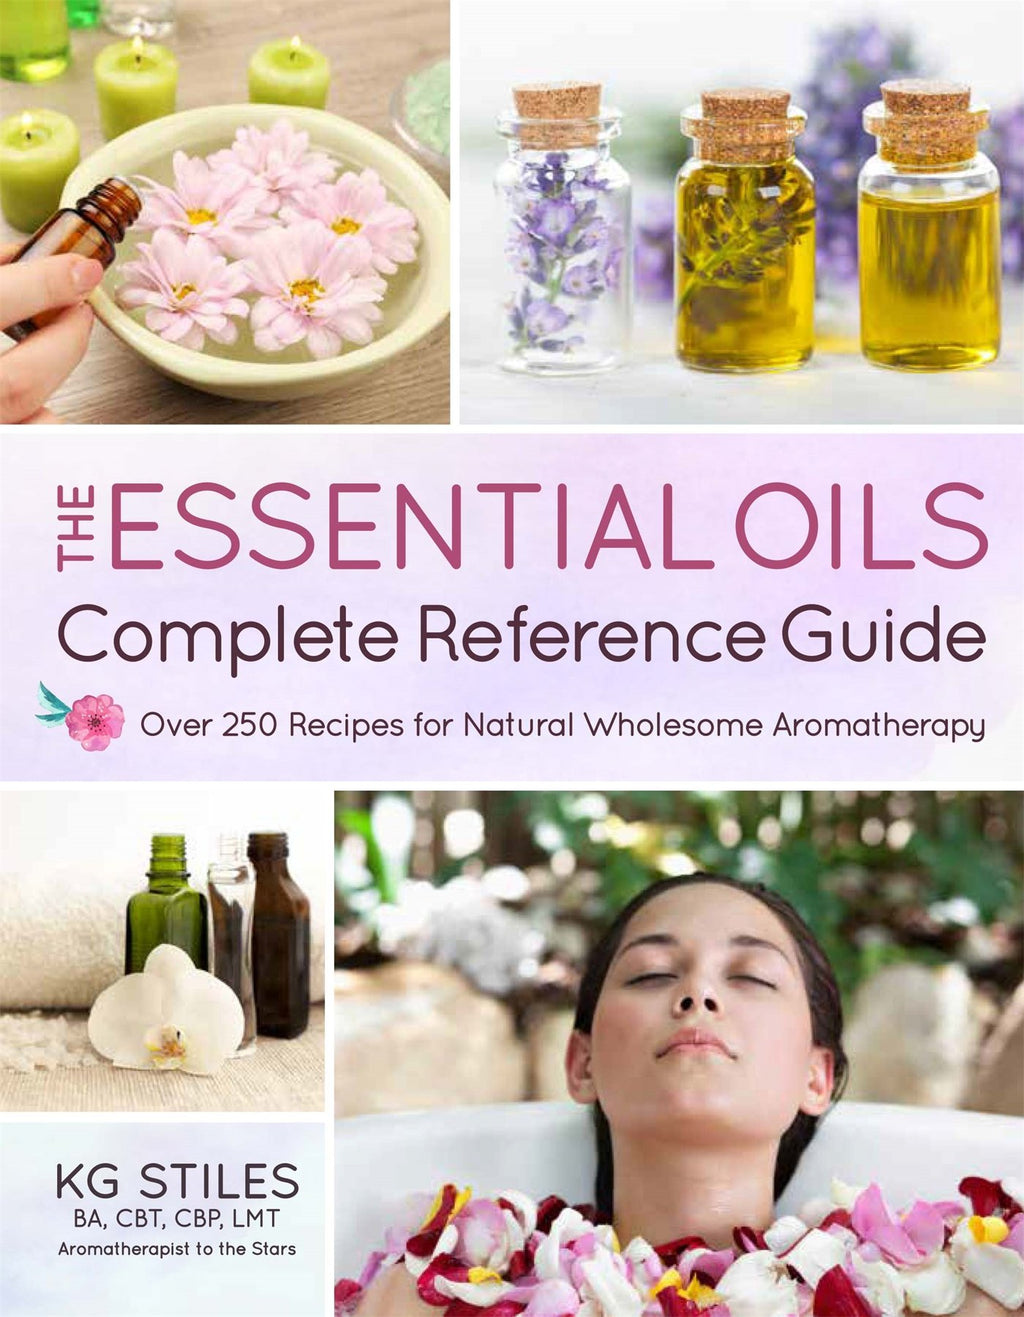 Essential Oils Complete Reference Guide by KG Stiles